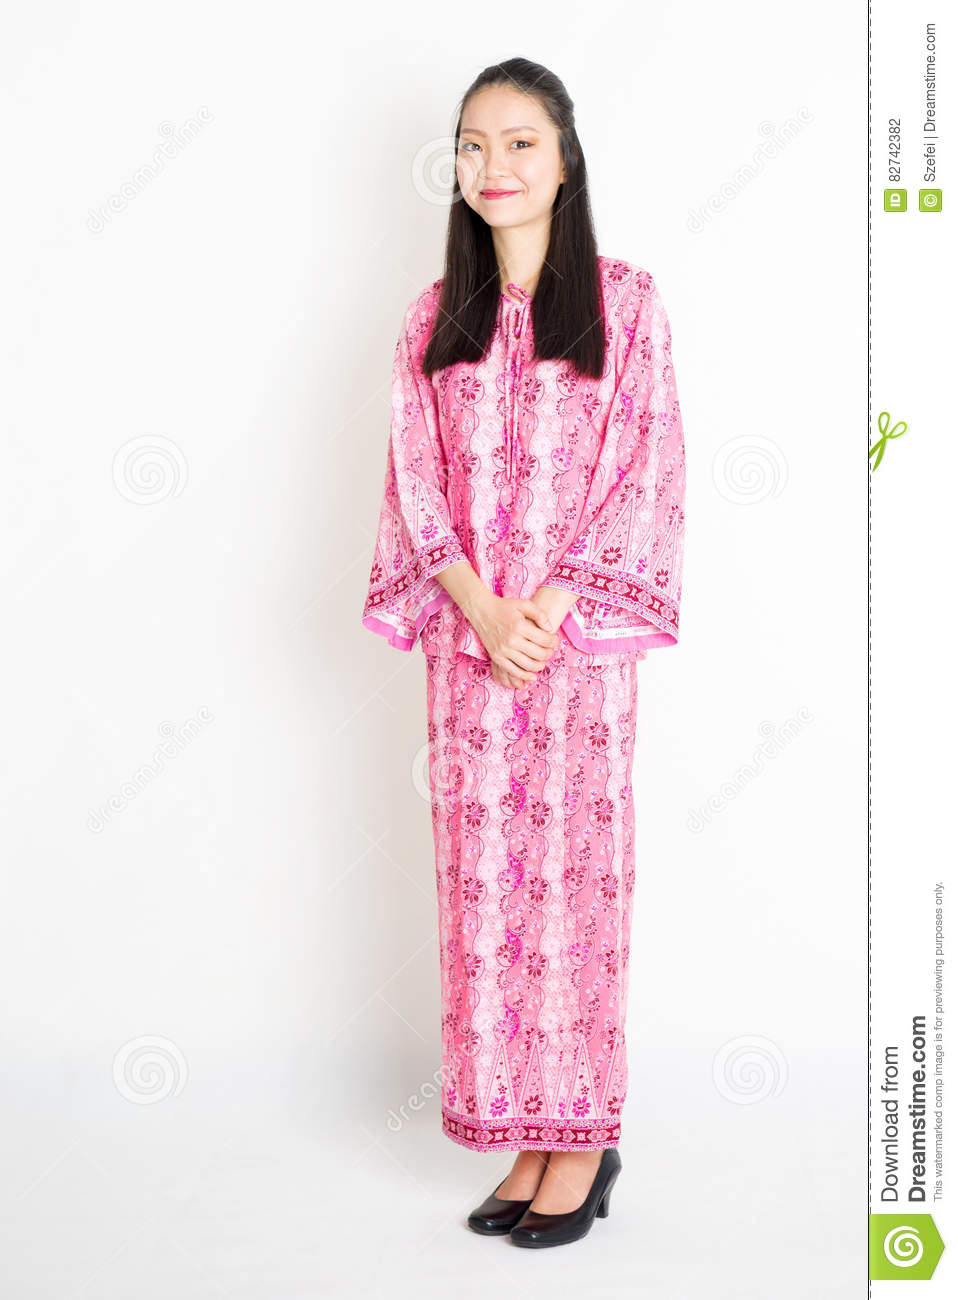 9196737dd Portrait of young southeast Asian woman in traditional Malay batik dress  smiling, standing on plain background.